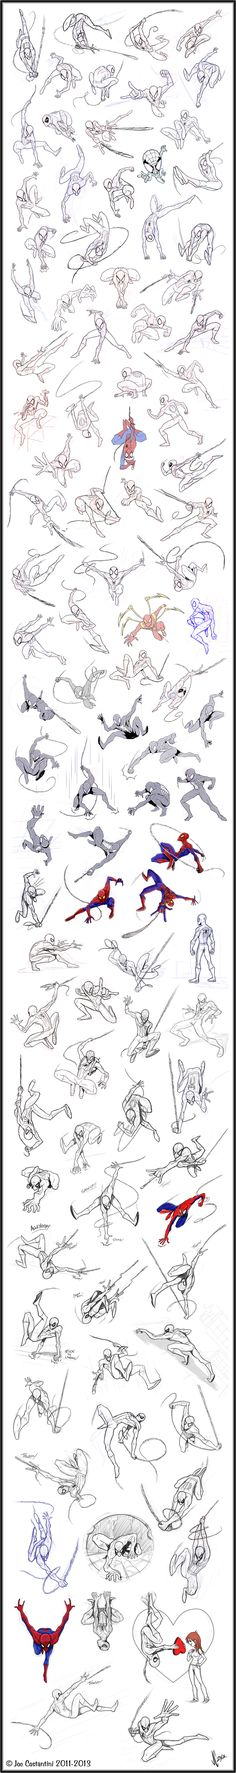 100 Spidey Poses by *2Ajoe on deviantART. Please take a moment to click this image and visit the artist's DeviantArt page to comment directly with the artist and see more of their works.